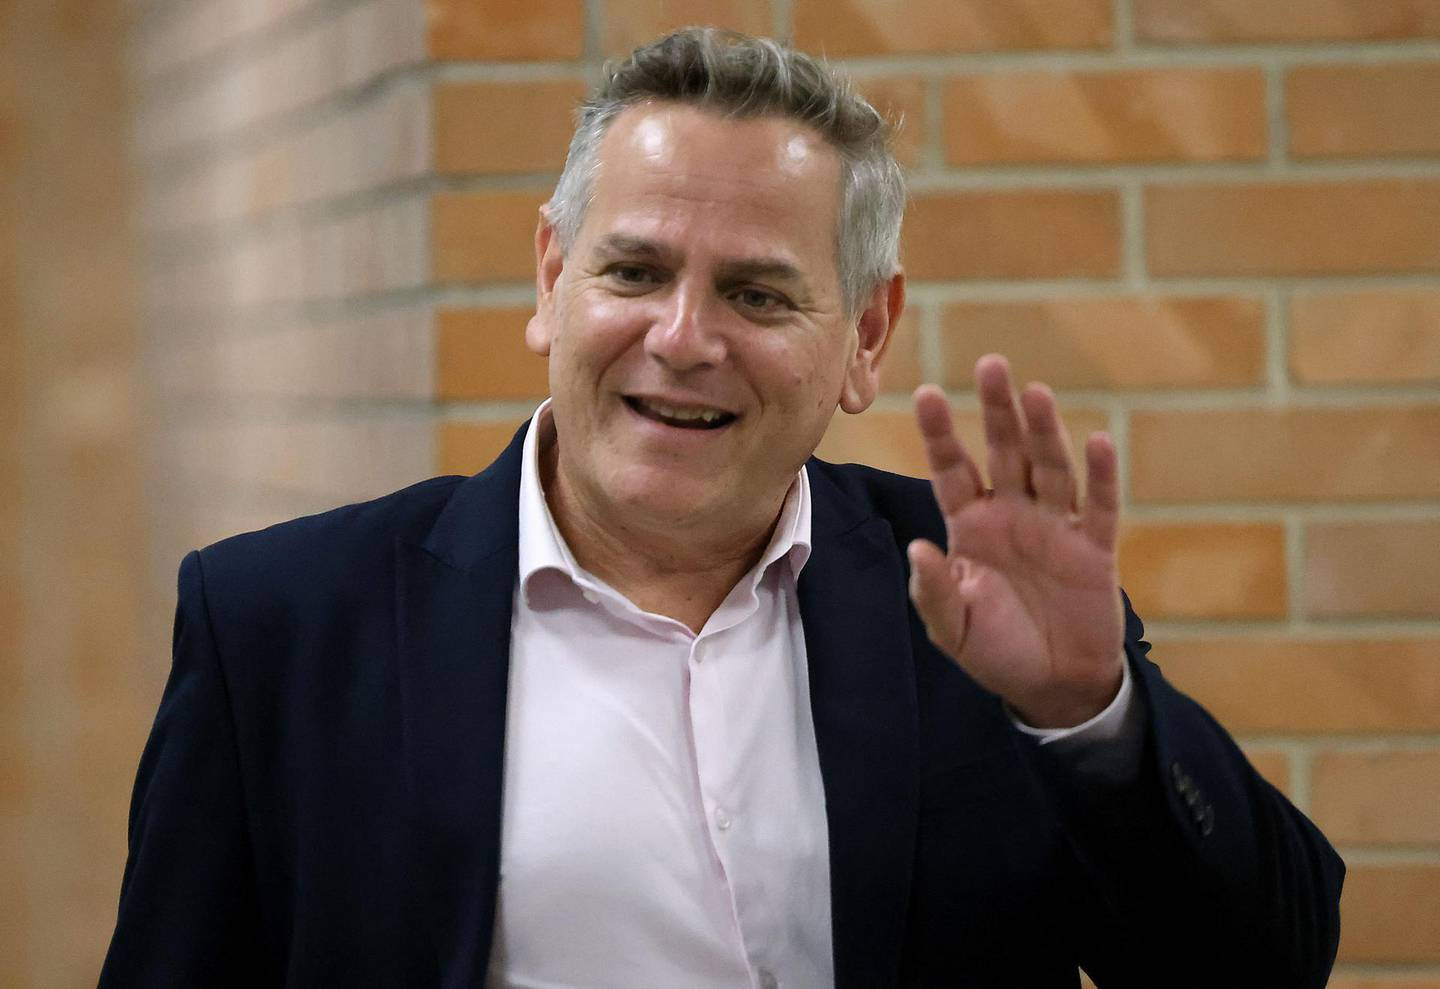 """Israeli politician Nitzan Horowitz of the Meretz party waves as he arrives to attend a parliamentary meeting at the Knesset in Jerusalem, ahead of a vote on a new government, on June 13, 2021. Israel's Prime Minister Benjamin Netanyahu faces the likely end of his 12-year reign ahead of a parliament vote in which a fragile """"change"""" coalition hopes to oust him and form a new government. / AFP / Gil COHEN-MAGEN"""